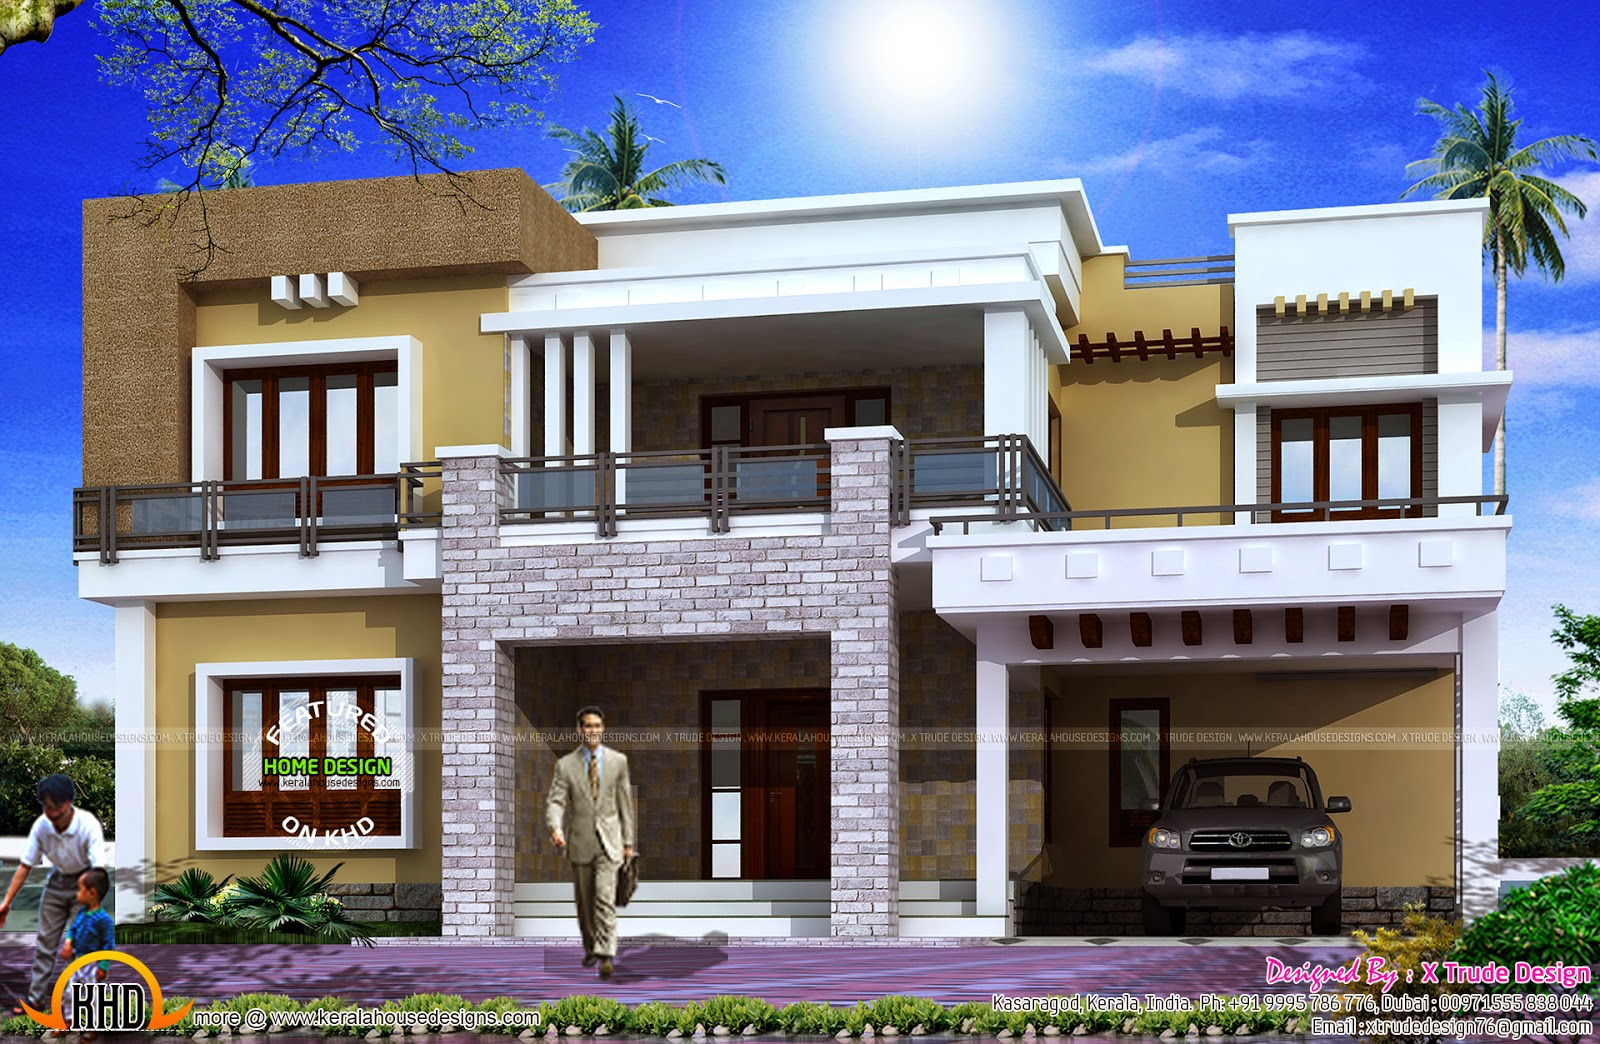 Keralahousedesigns july 2015 for Single house front design